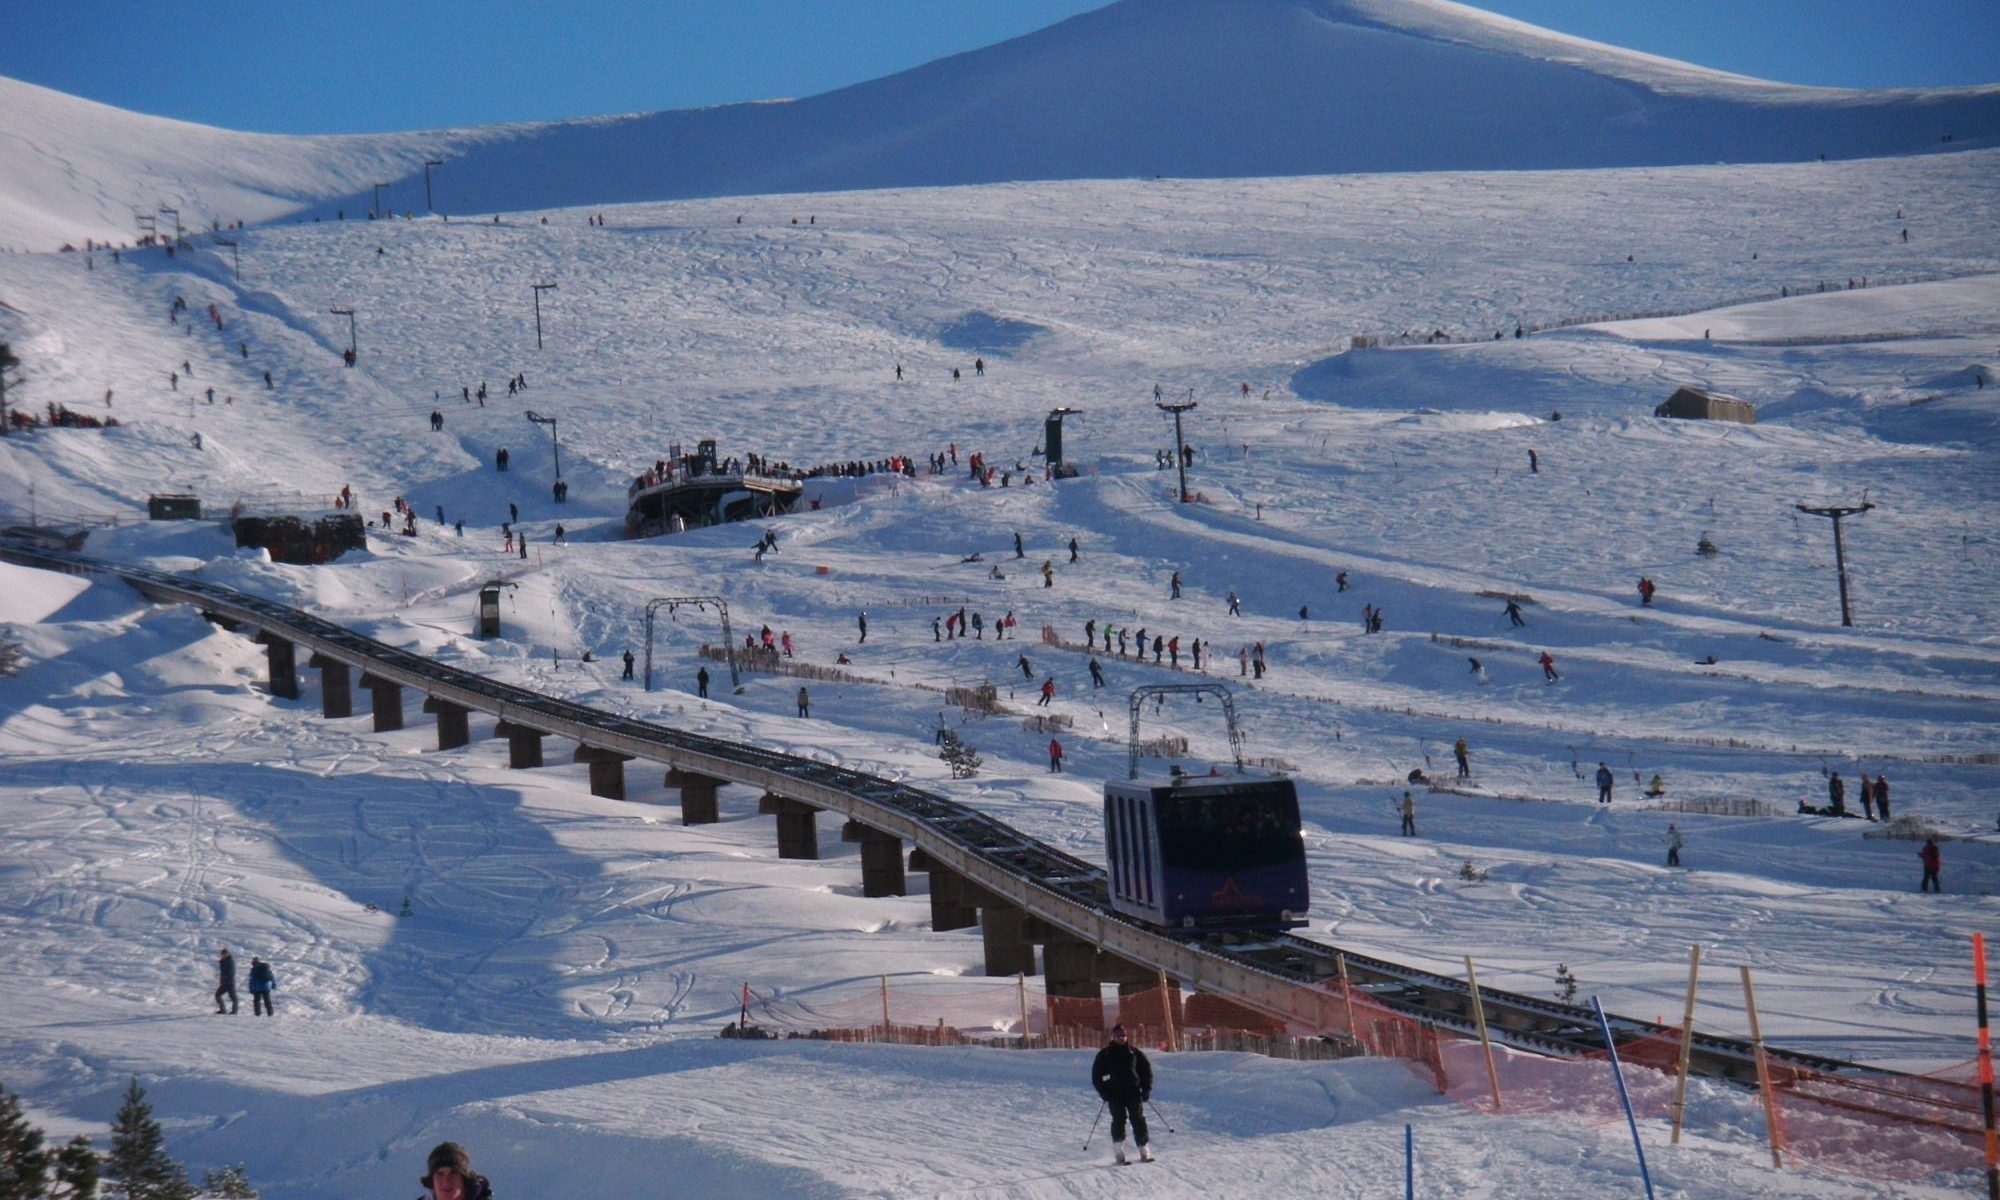 The Cairngorm Mountain's funicular might not open this coming season. Photo: Cairngorm Mountain